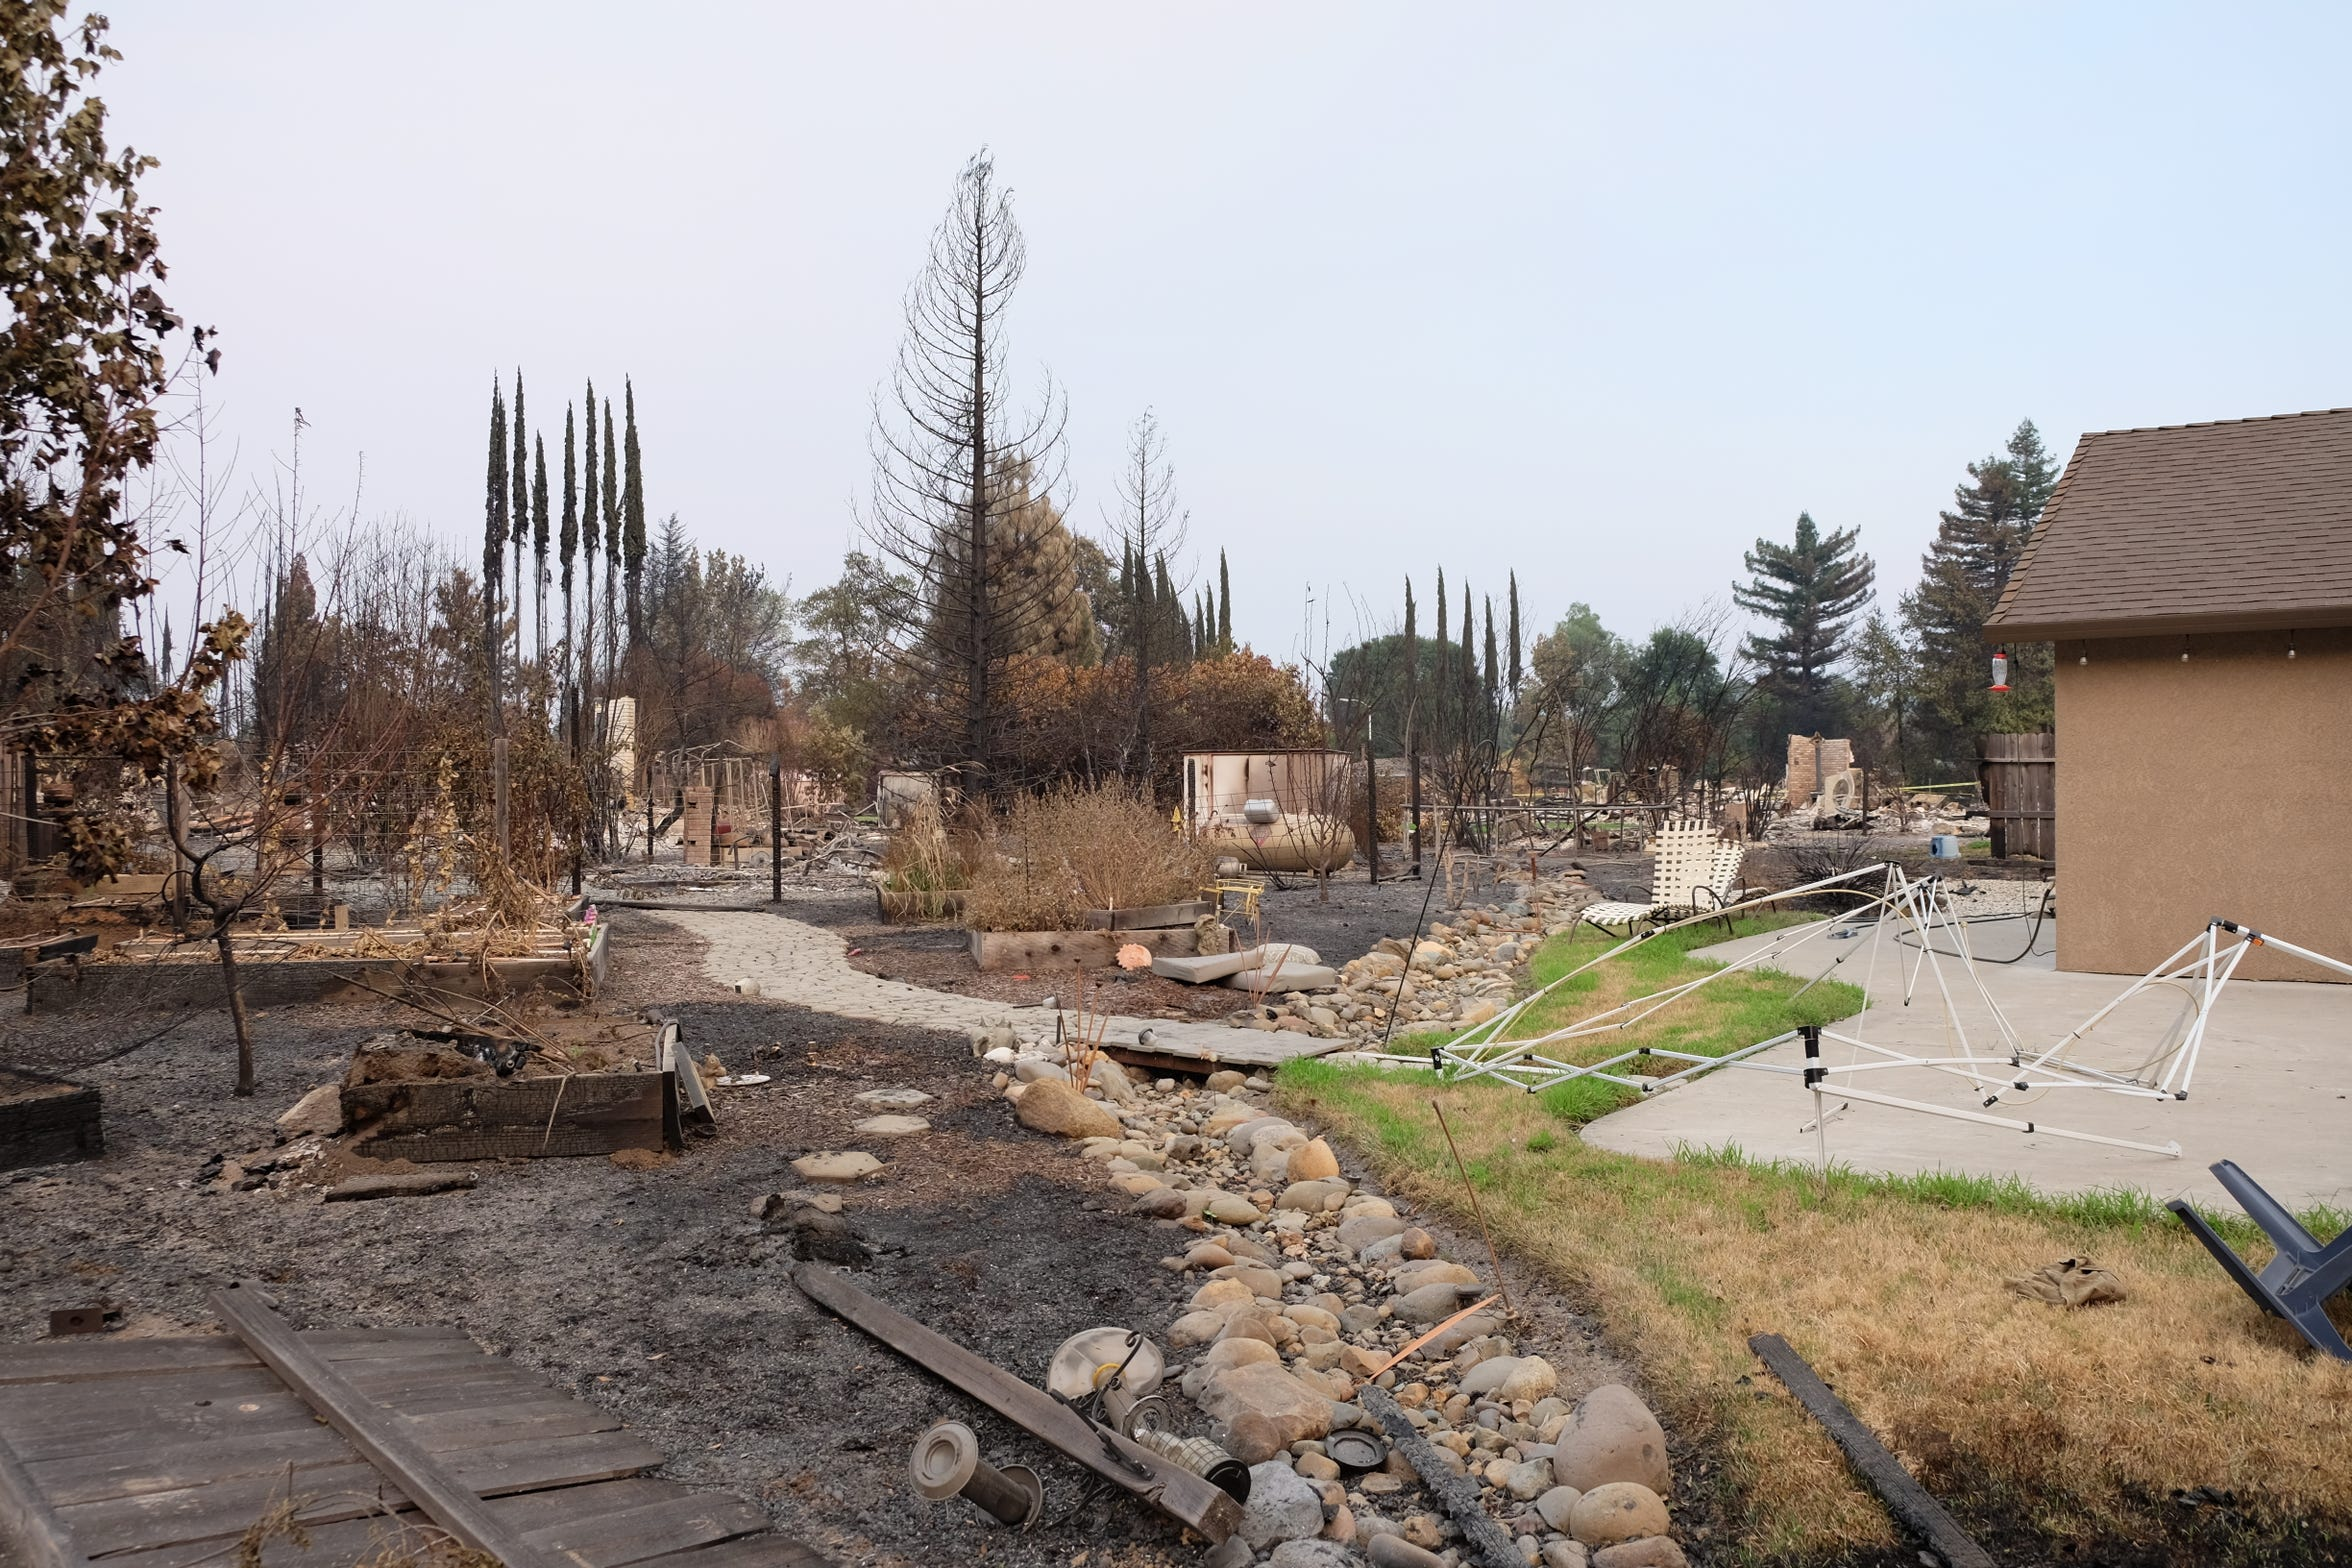 The Robinsons, former Salem residents, fled their Redding residence during the Carr Fire which avoided major damage yet leveled homes on all sides.